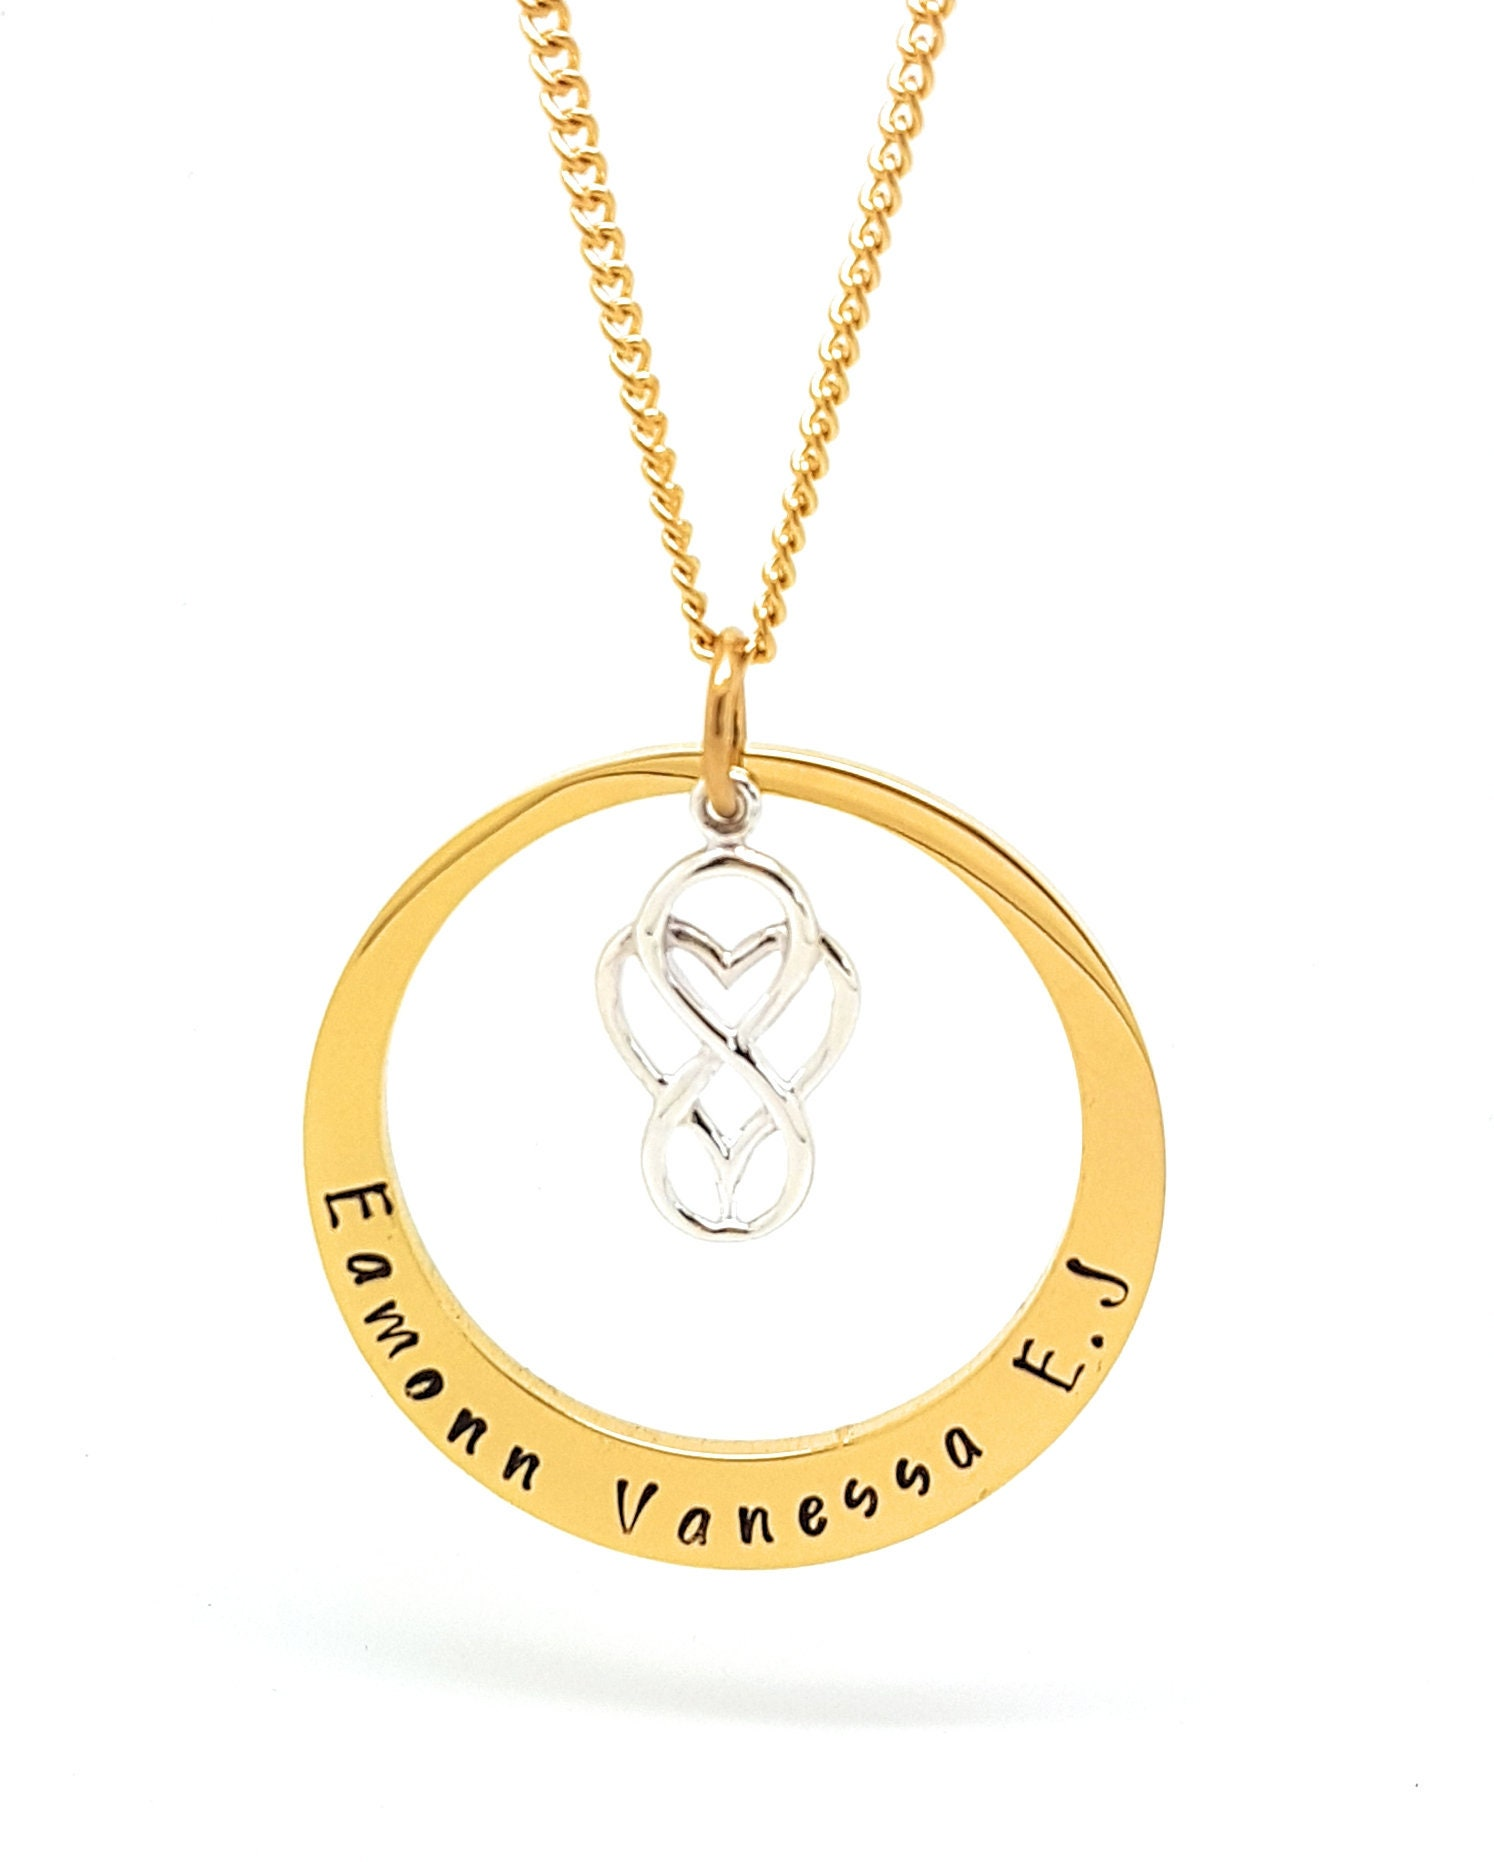 Birthday Gift Ideas 18th 21st 50th Personalised Necklace With Family Names Silver Love Heart Infinity Charm